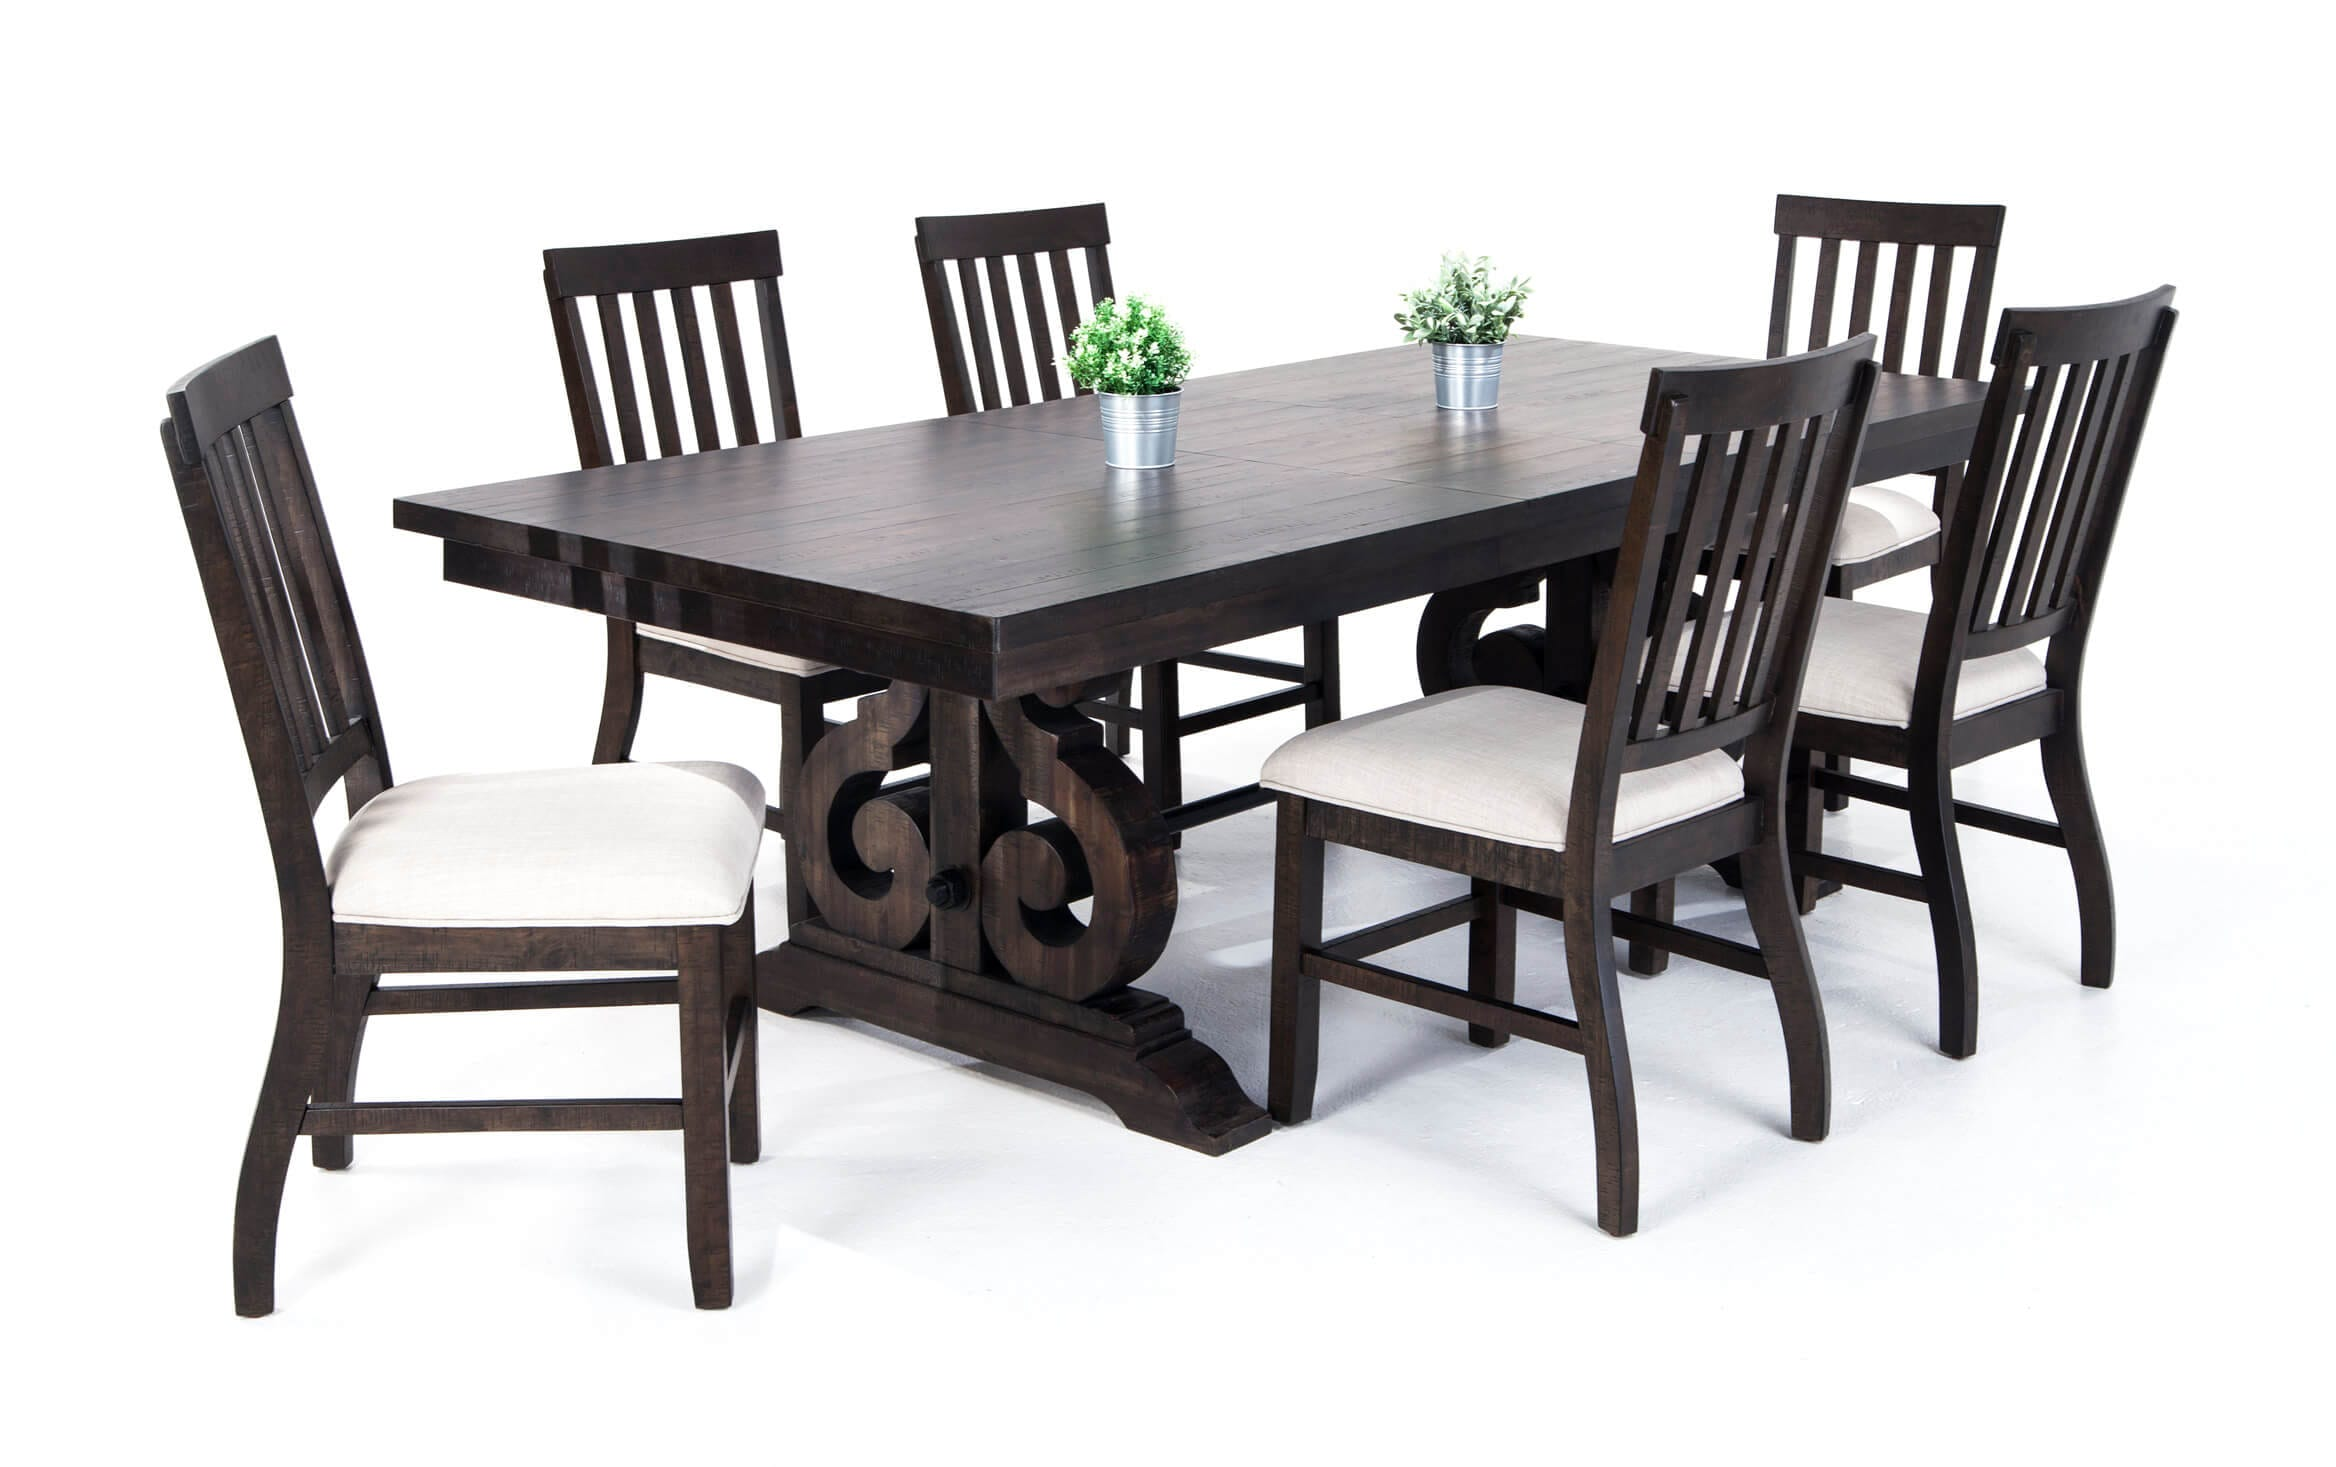 Sanctuary 7 Piece Dining Set With Slat Chairs Bob S Discount Furniture